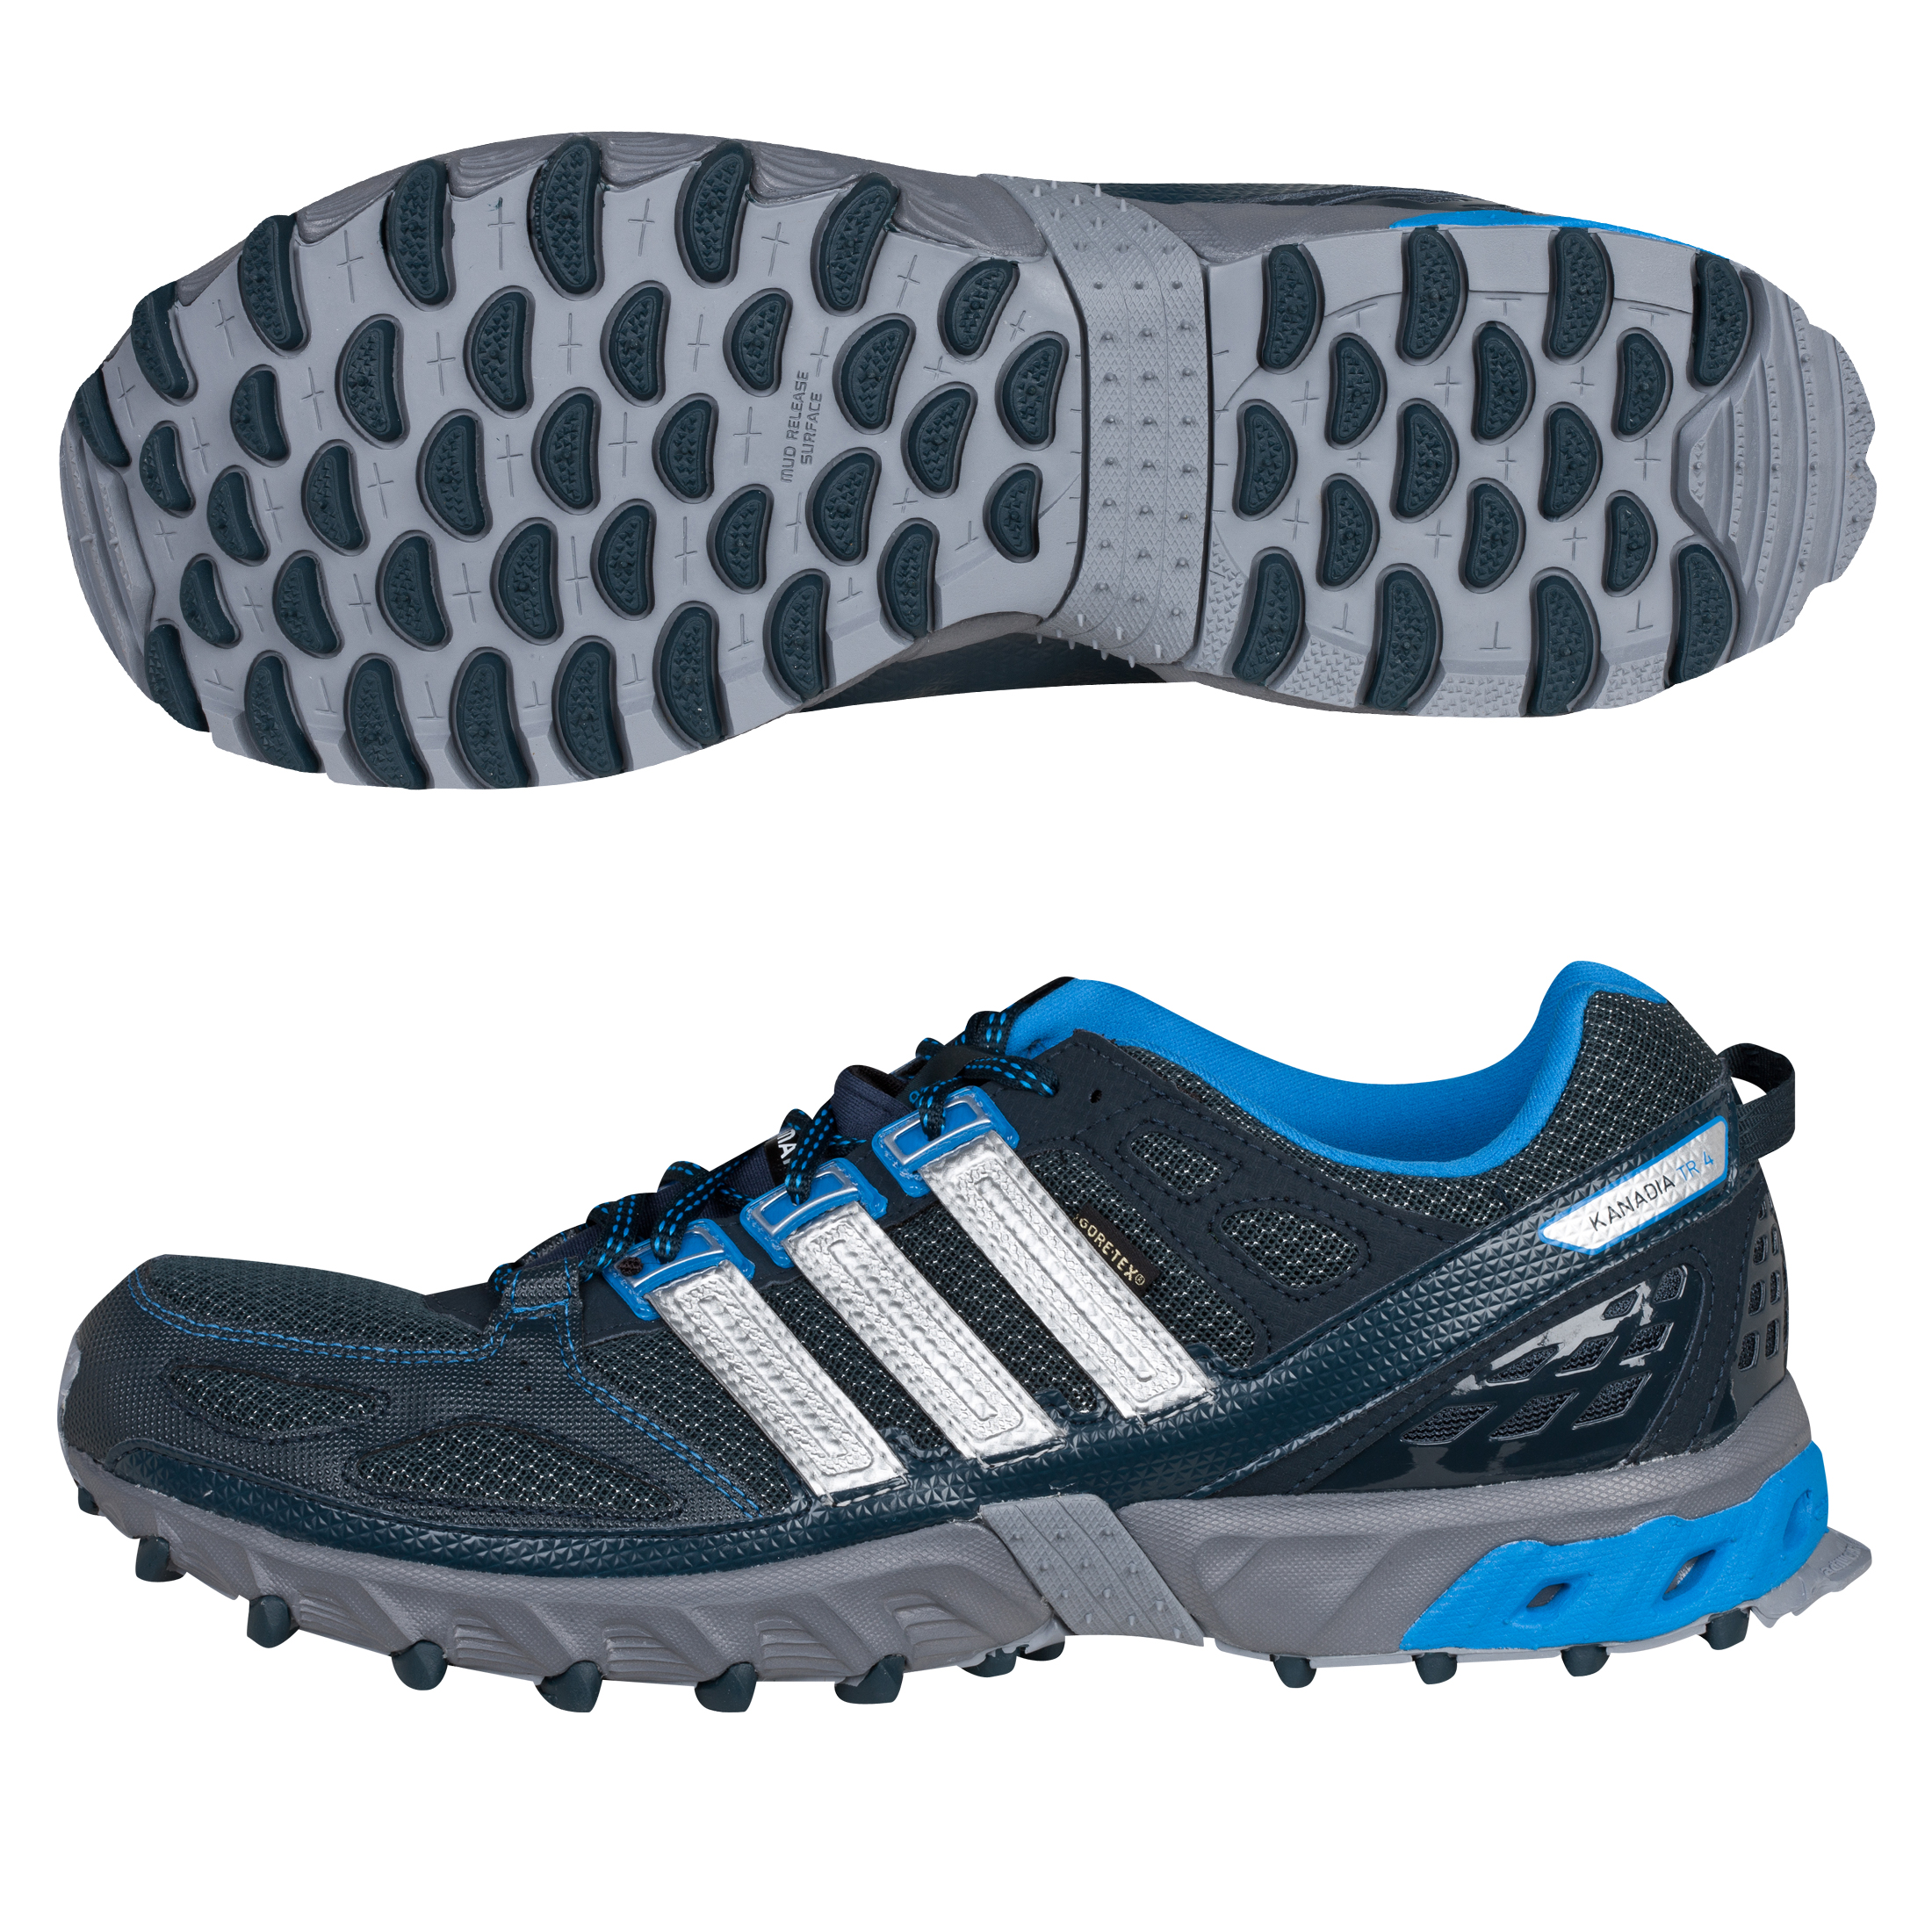 Running Kanadia 4 TR GTX Textile Trainers - Tech Onix/Infrared/Metallic Silver